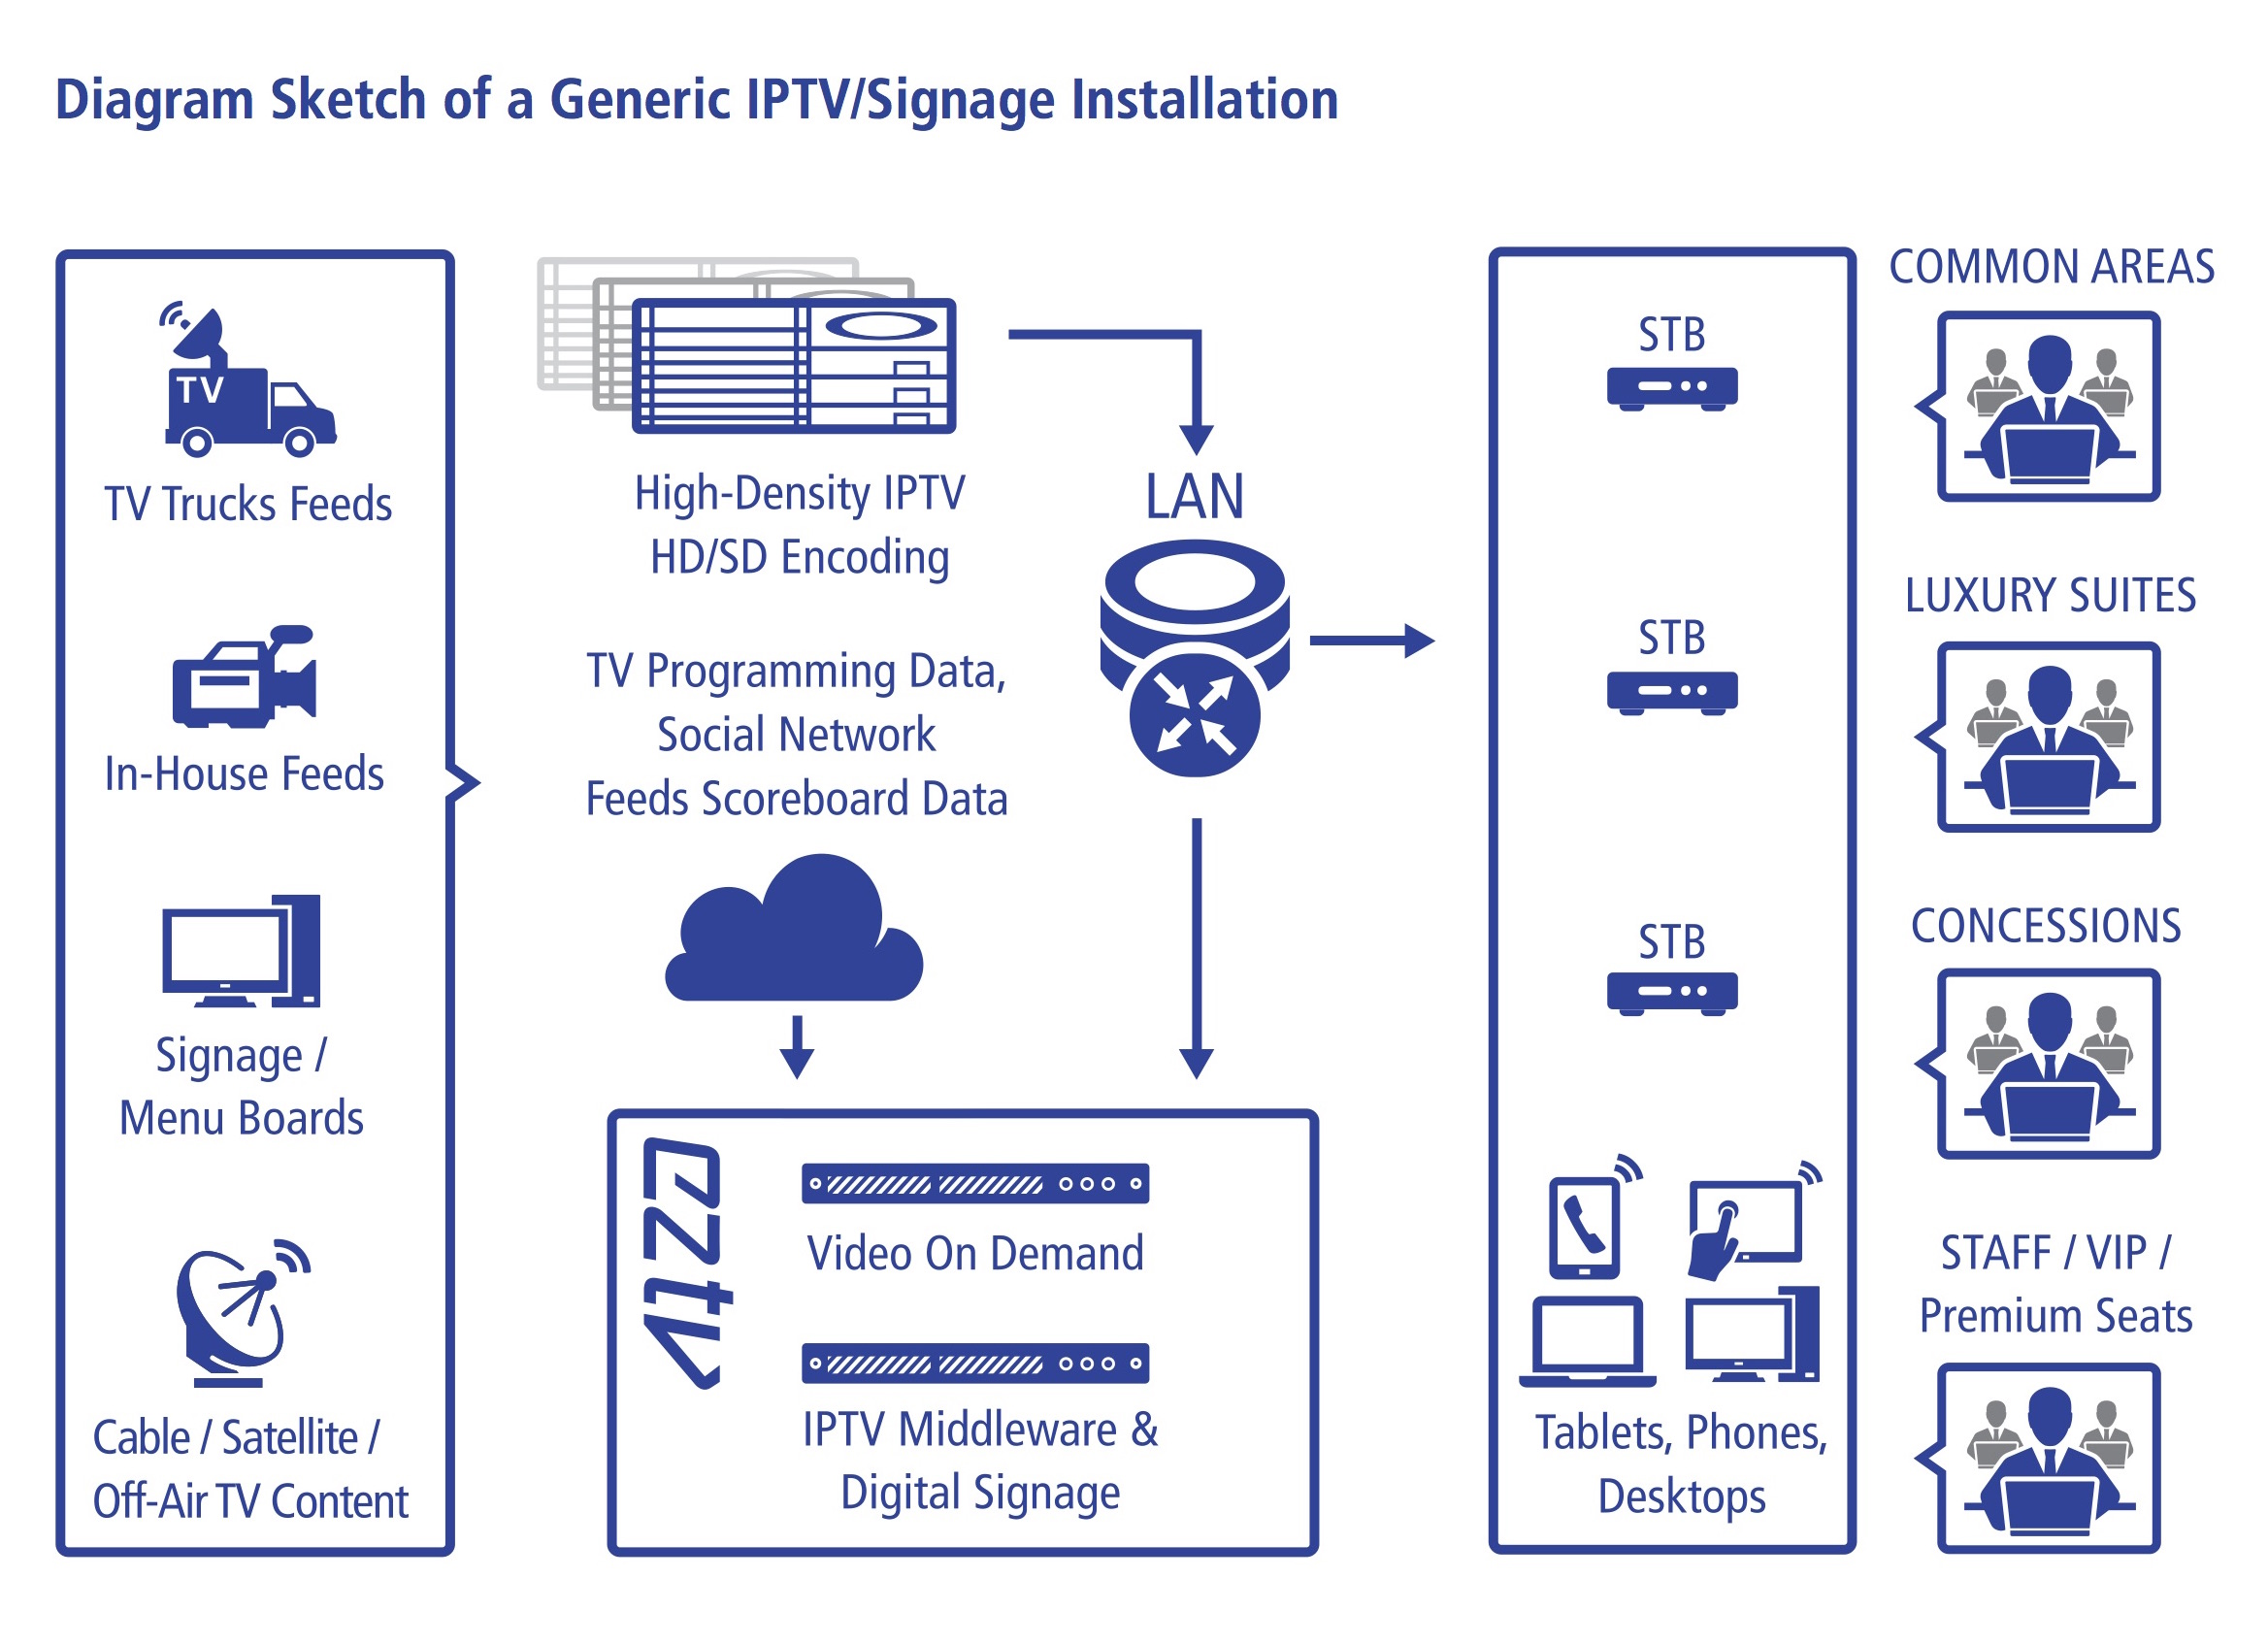 White Paper: IPTV and Digital Signage, The Ultimate Visitor